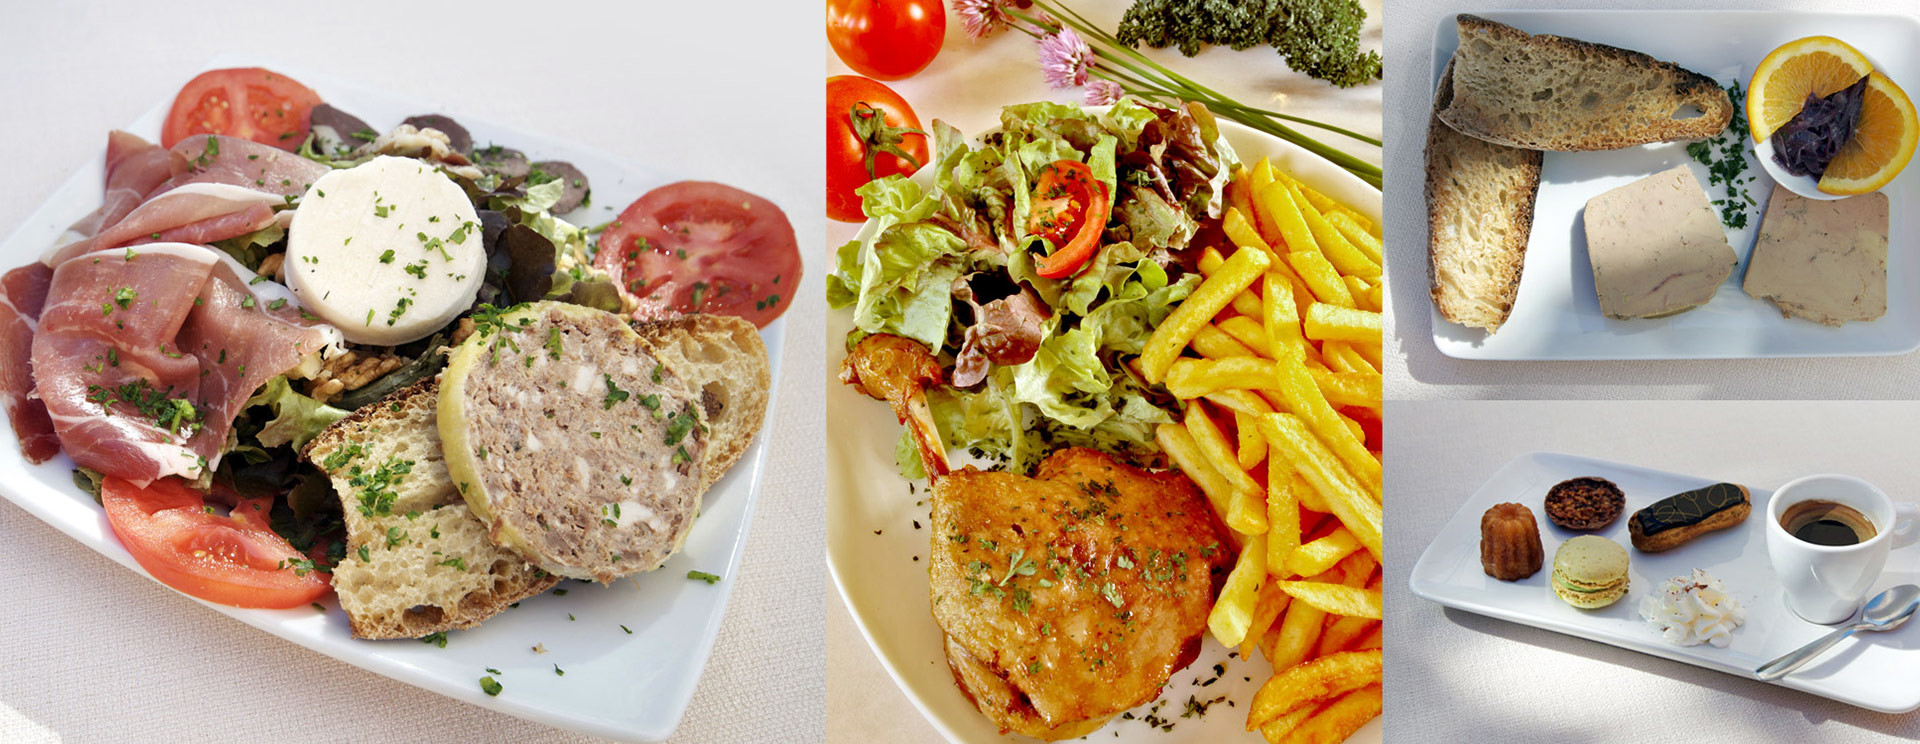 A Périgourdin lunch or a snack during your beautiful visit.